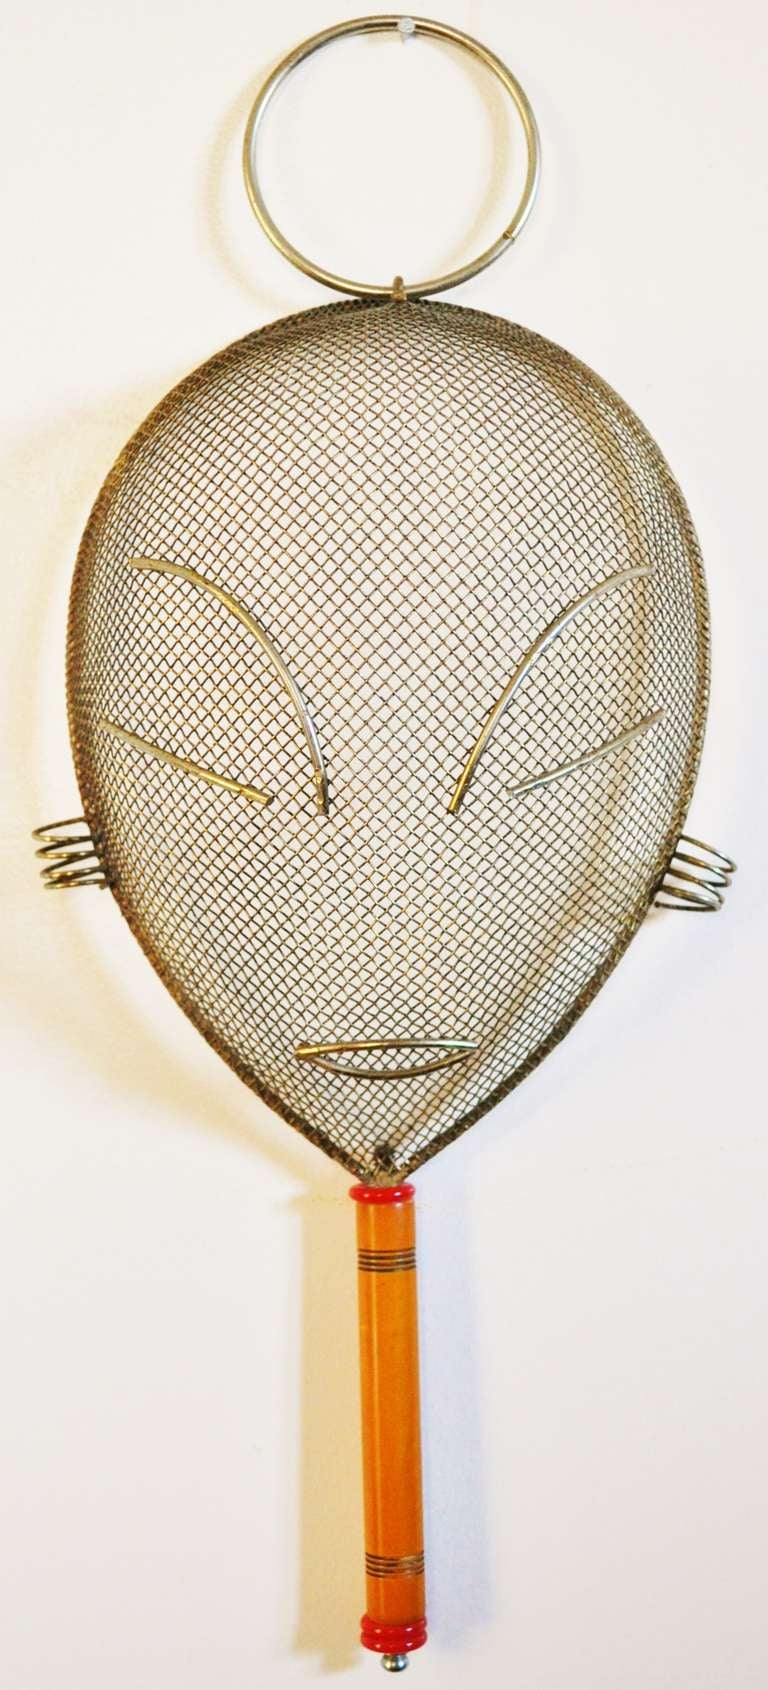 This Mid-Century wire wall mask by Frederick Weinberg features the usual large ring at the top but also a seldom seen handle made from incised butterscotch Bakelite with red Catalin accents. This item is in near mint condition.